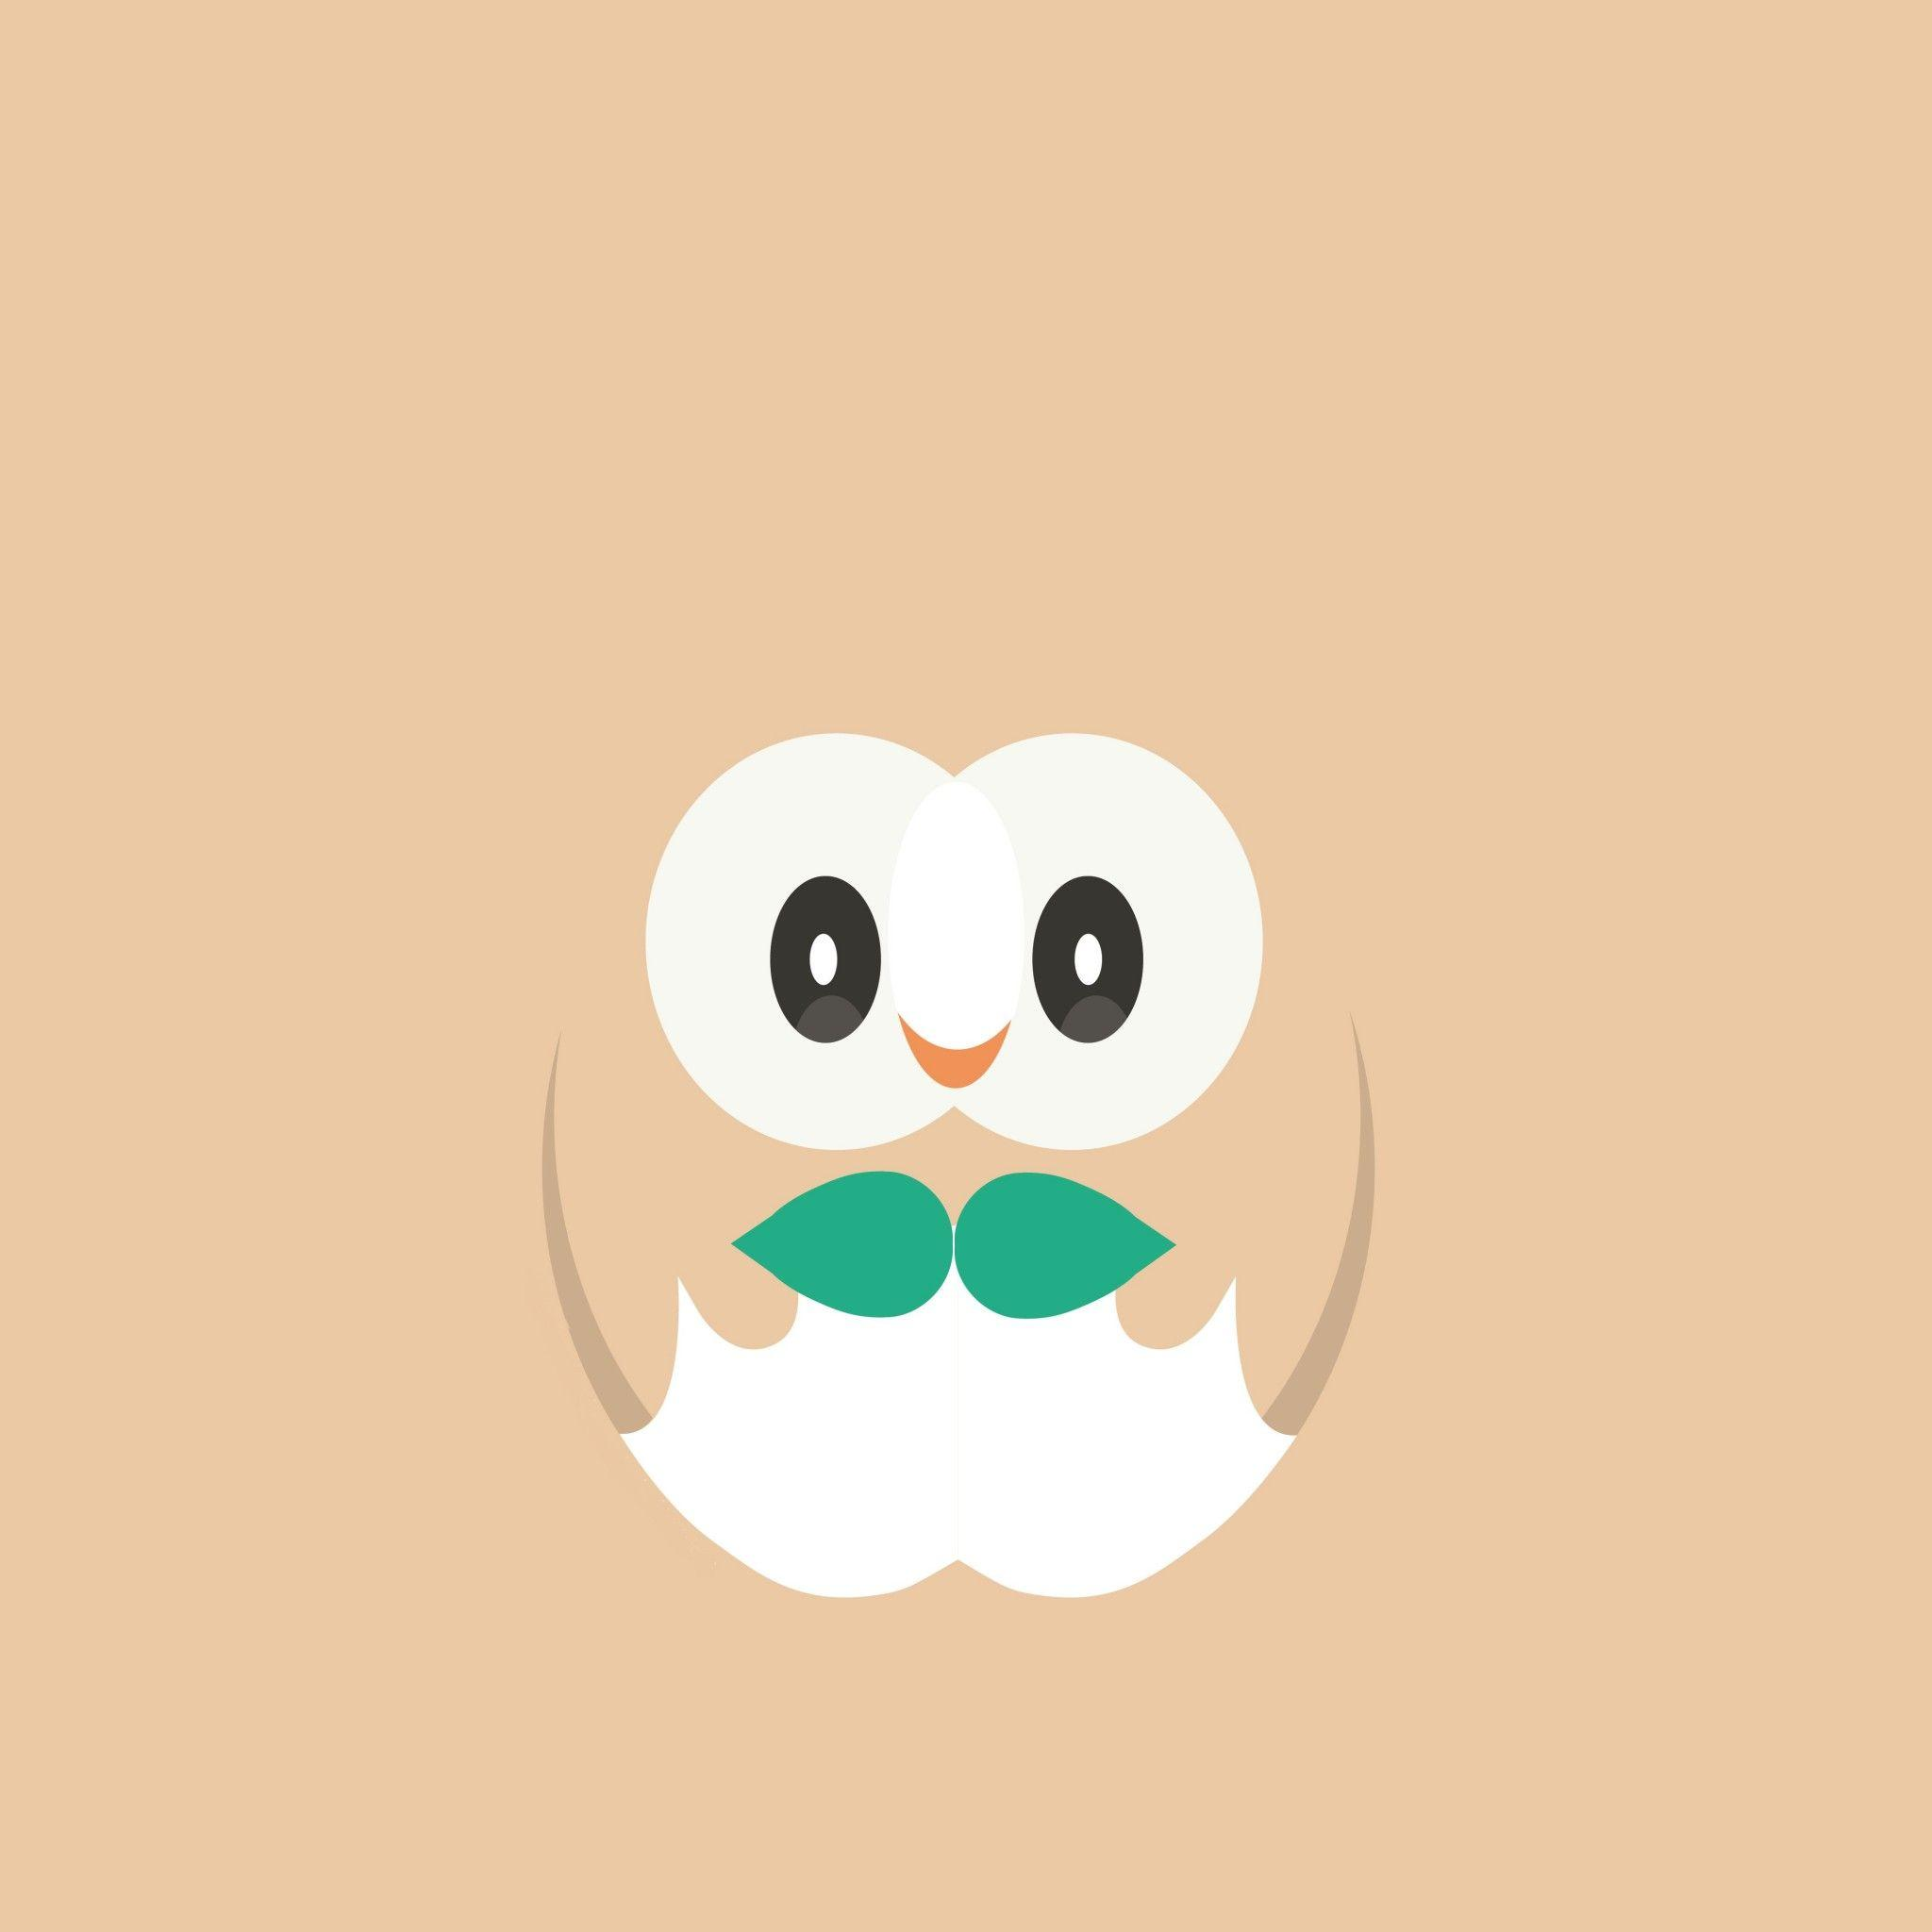 Download Rowlet Pokemon 2048 x 2048 Wallpapers - 4709160 - pokemon ...